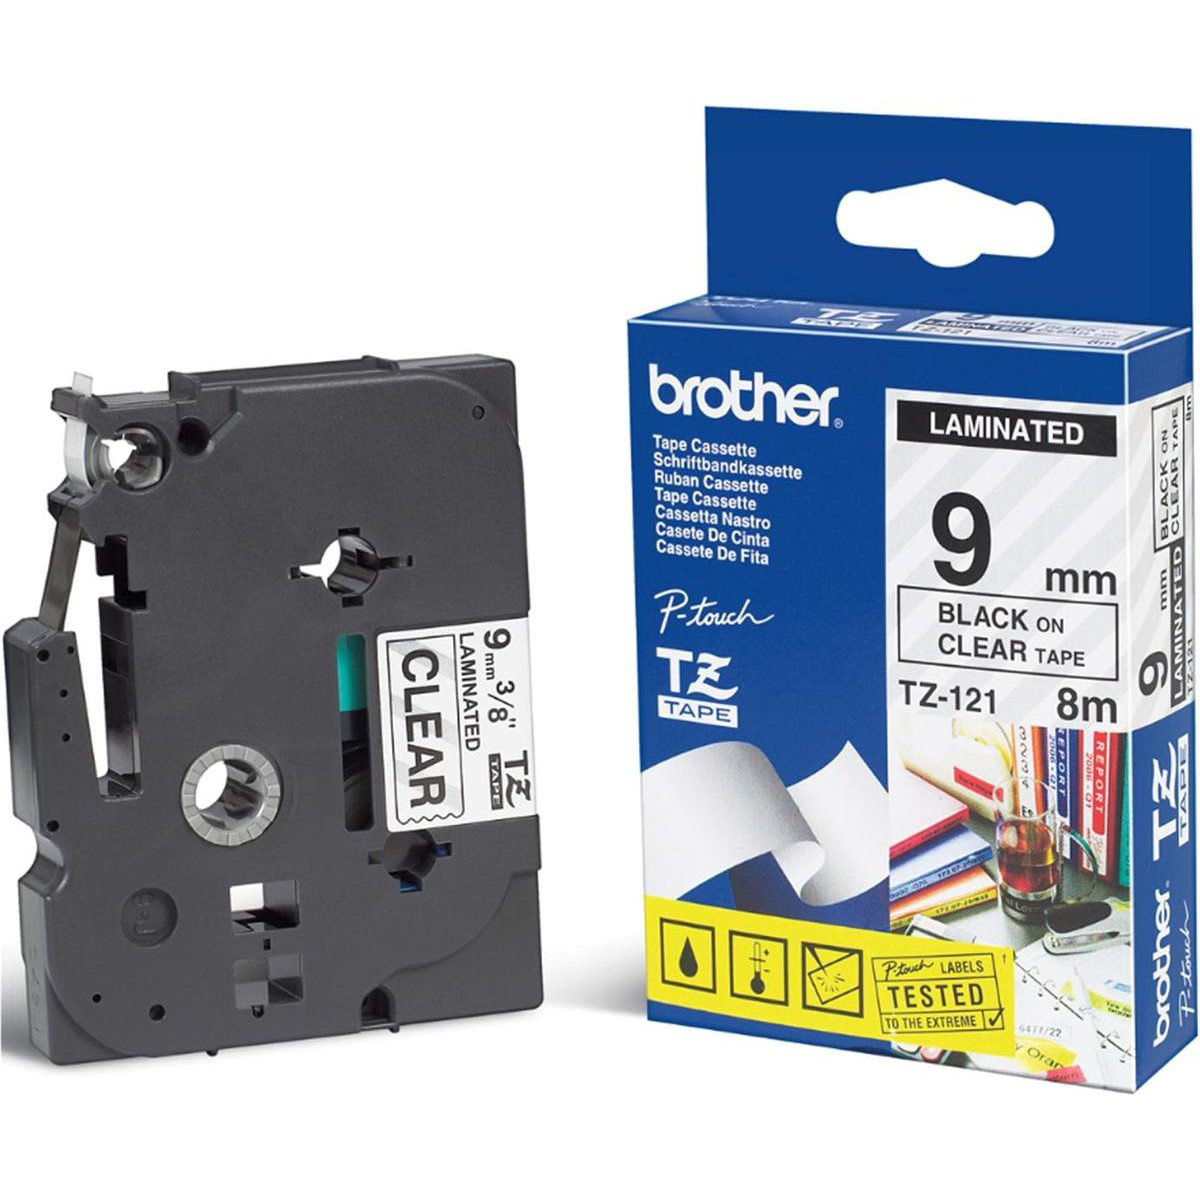 Brother P-touch TZE Label Tape 9mmx8m Black on Clear Ref TZE121